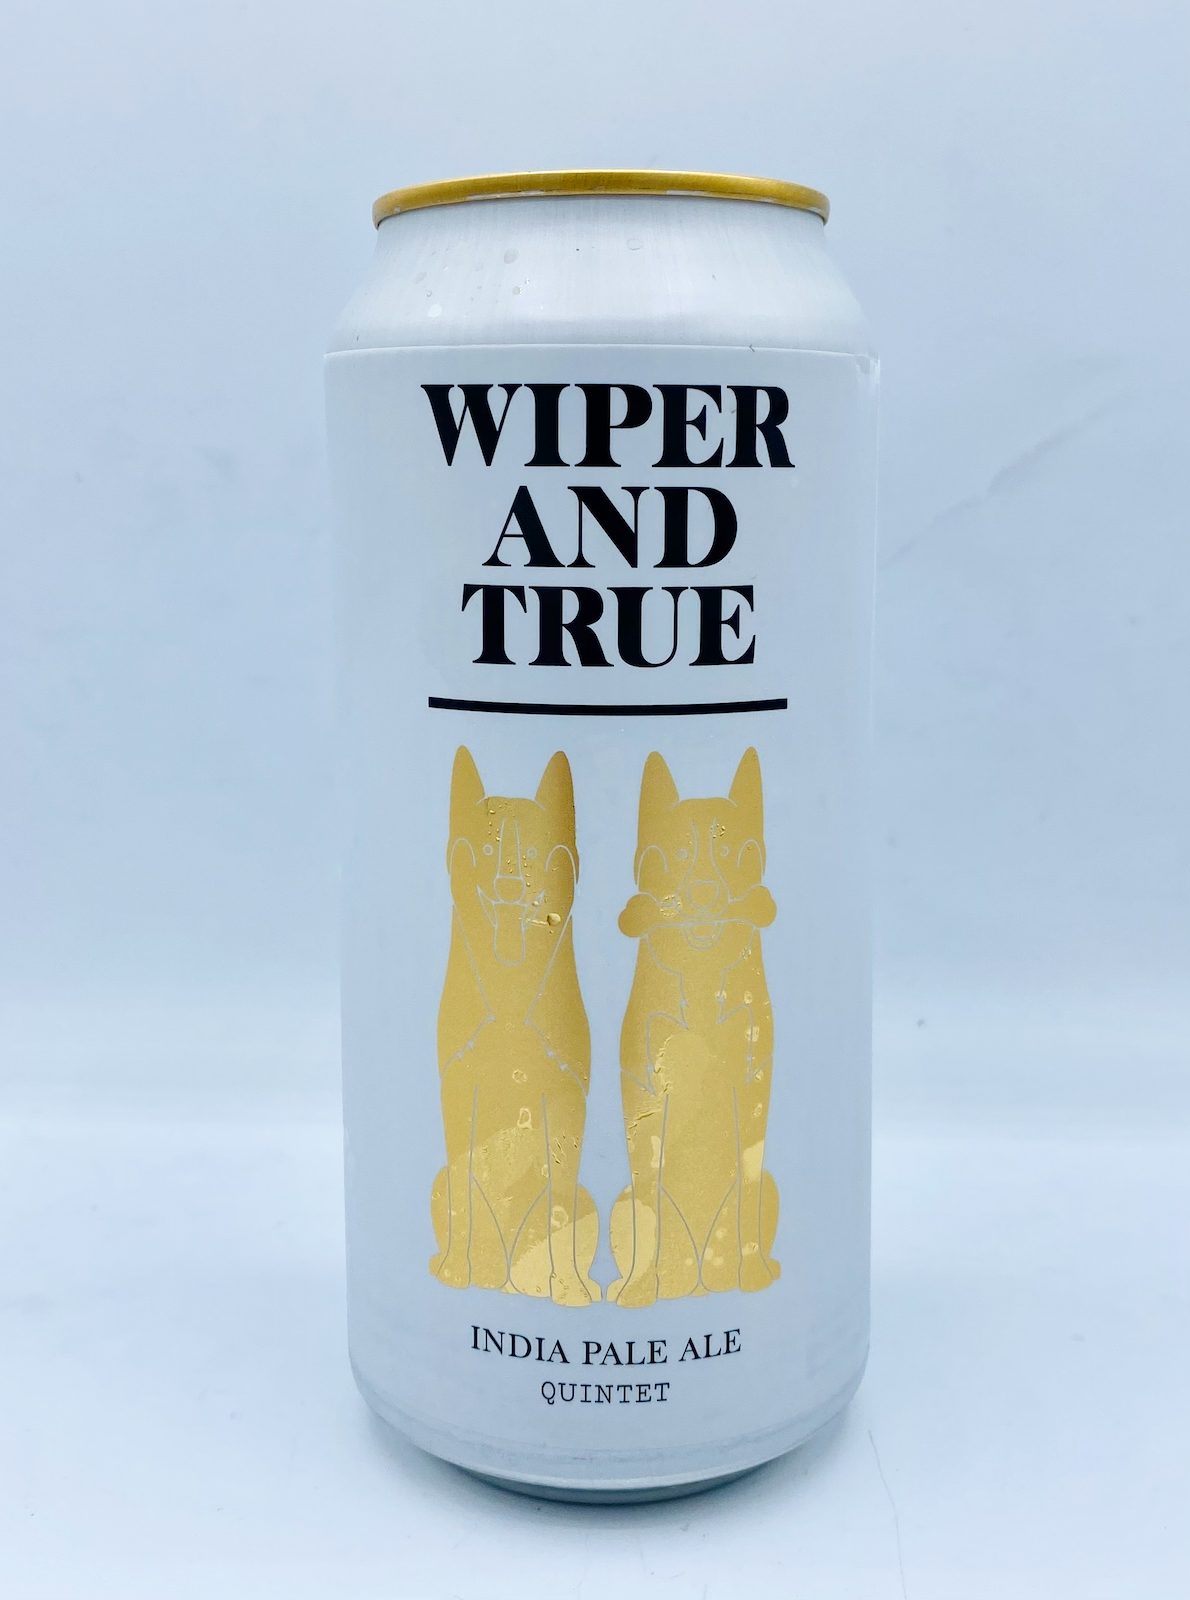 Wiper and True - Quintet 6.2%